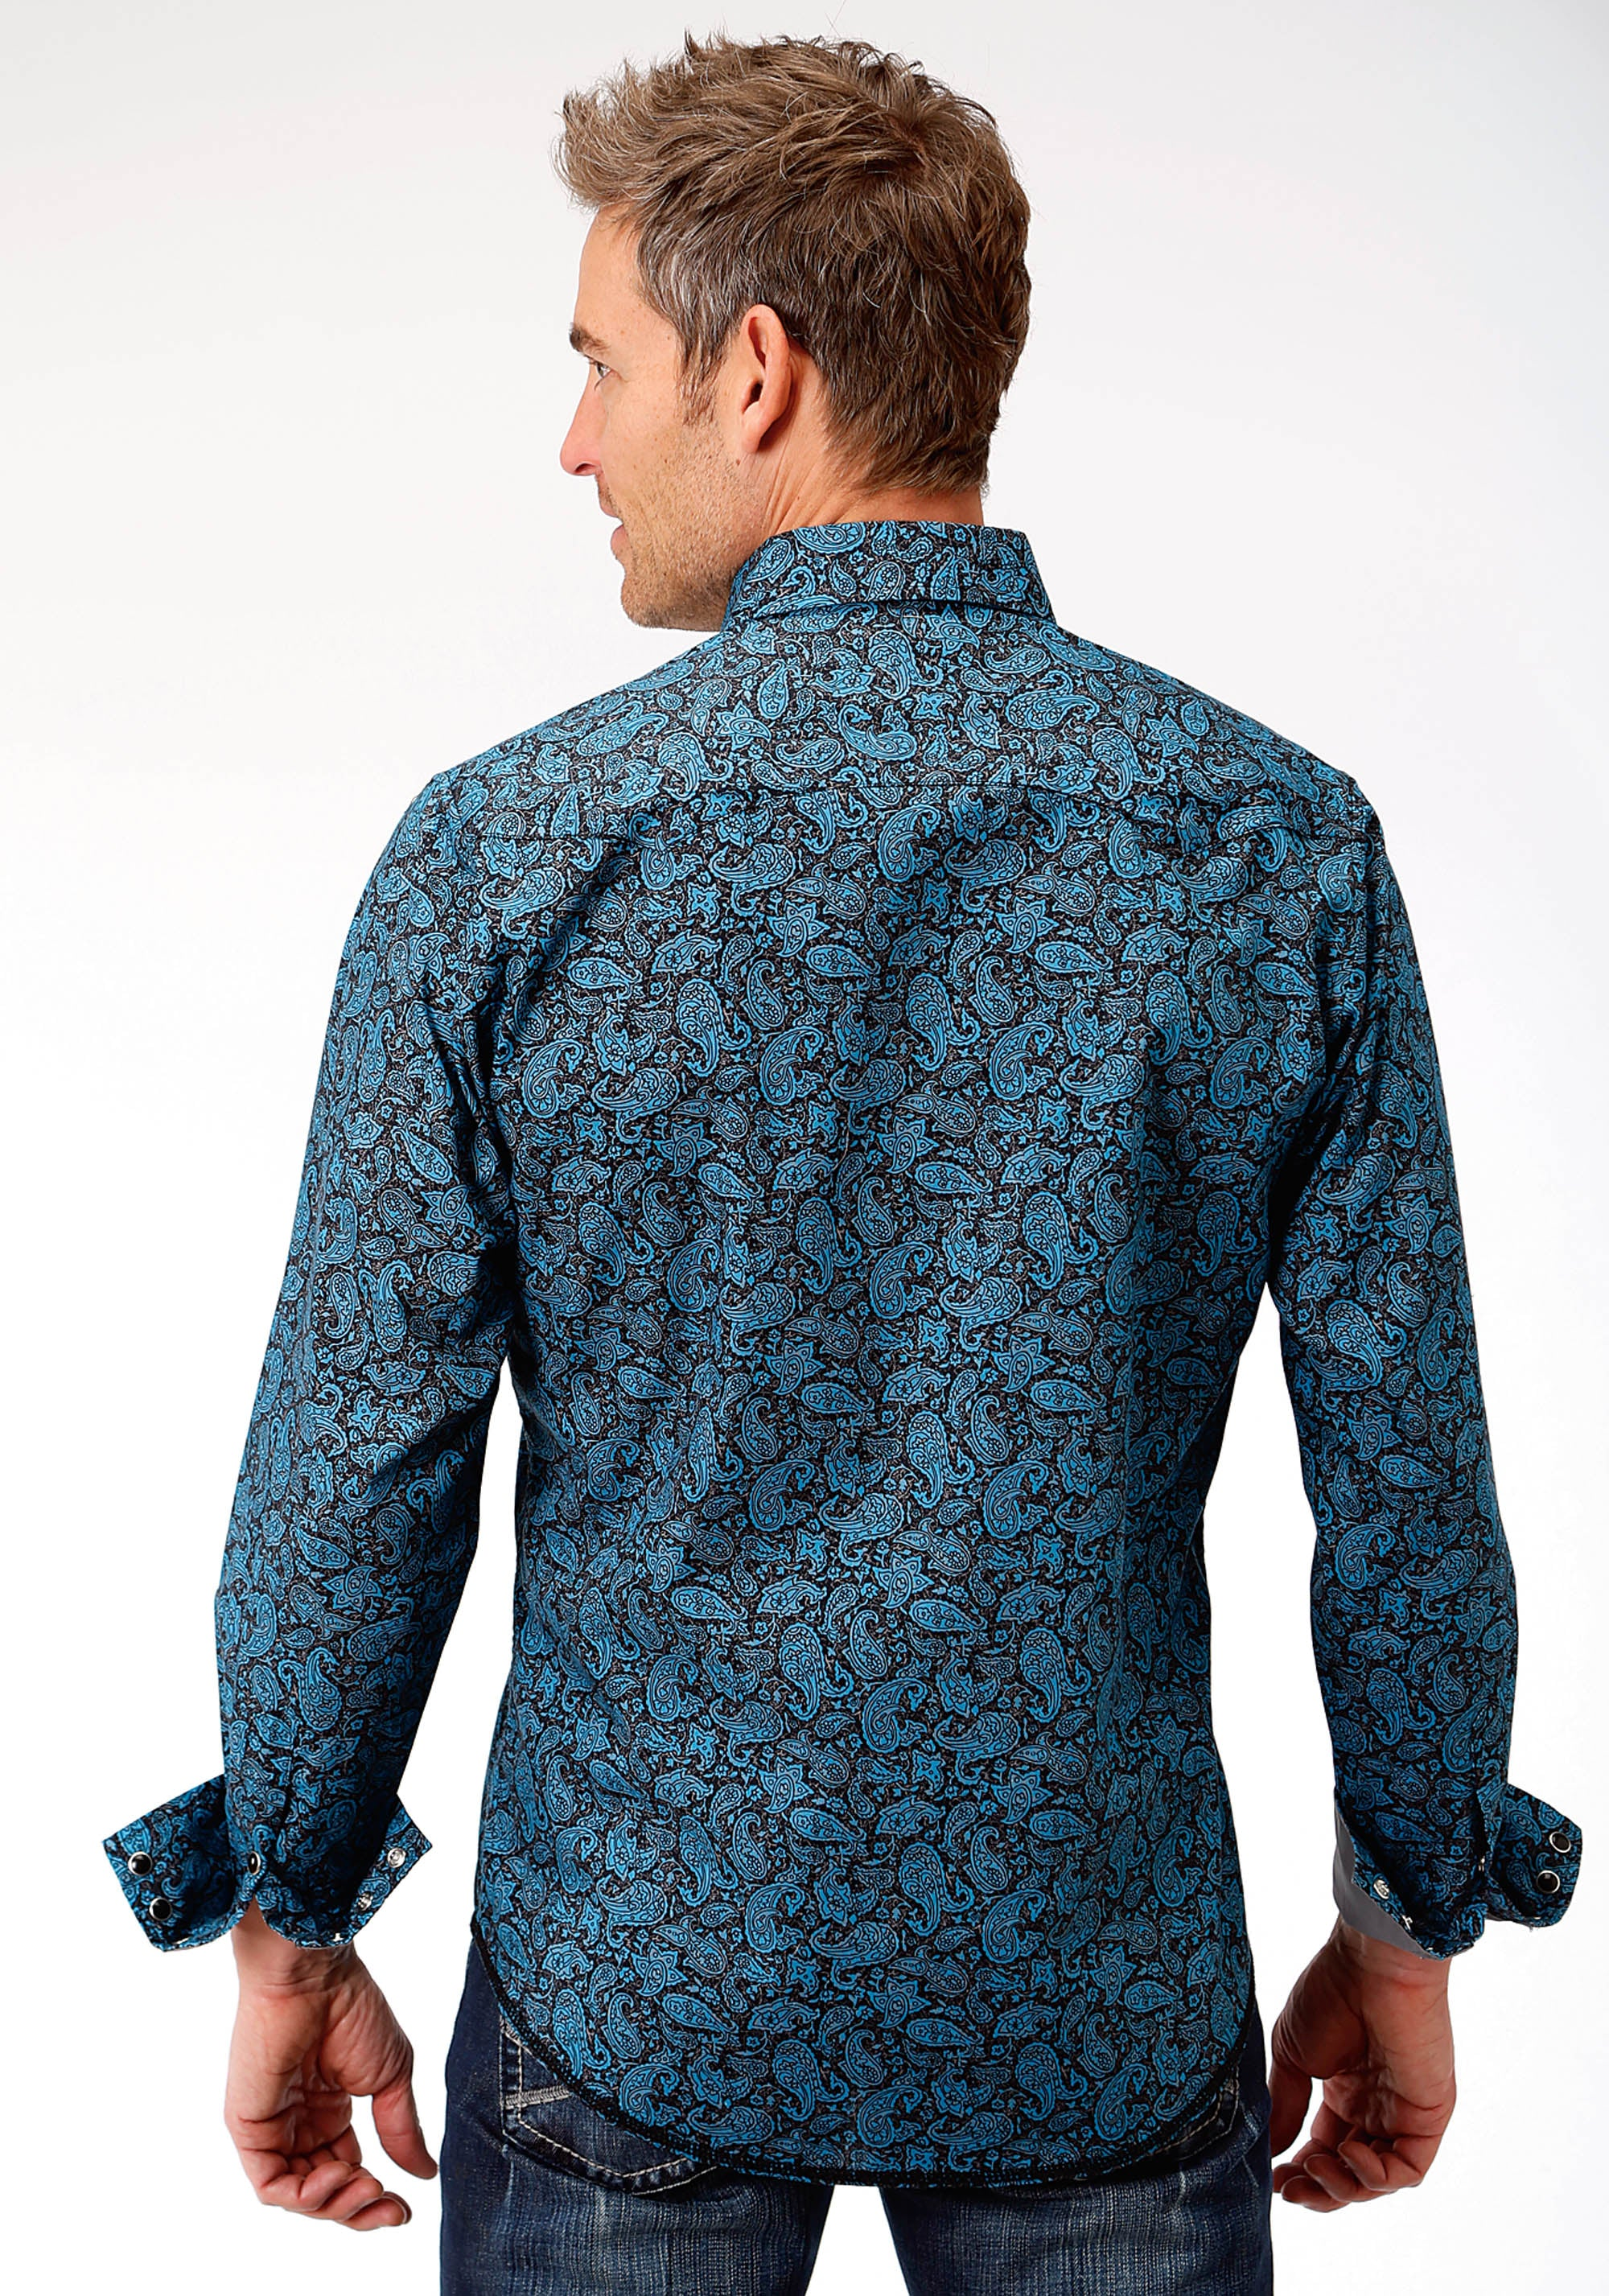 ROPER MENS BLUE 0785 PAISLEY CRACKLE WEST MADE COLLECTION LONG SLEEVE